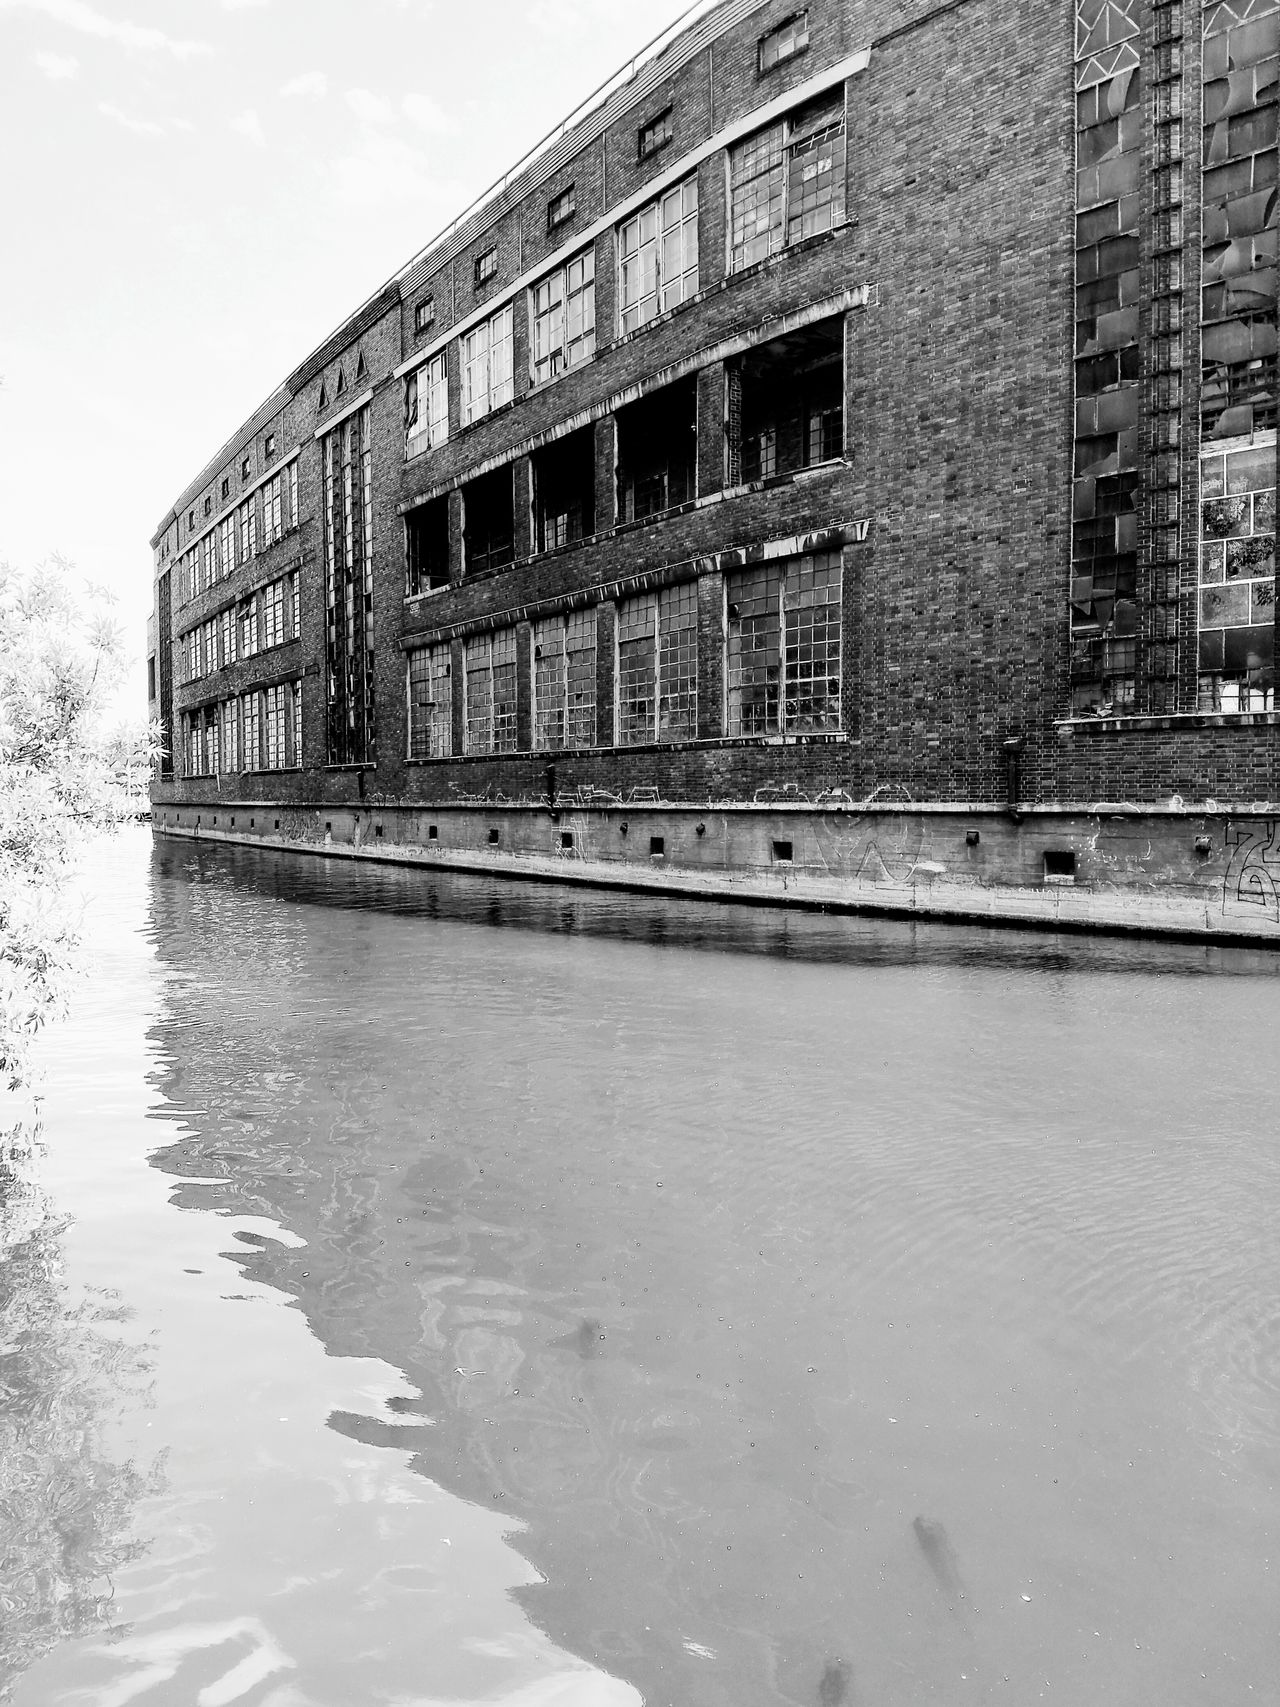 Capture Berlin Spree River Industrialbeauty Brick Building Berliner Ansichten Urbanphotography Dirty Water  Run Down Places Welcome To Black